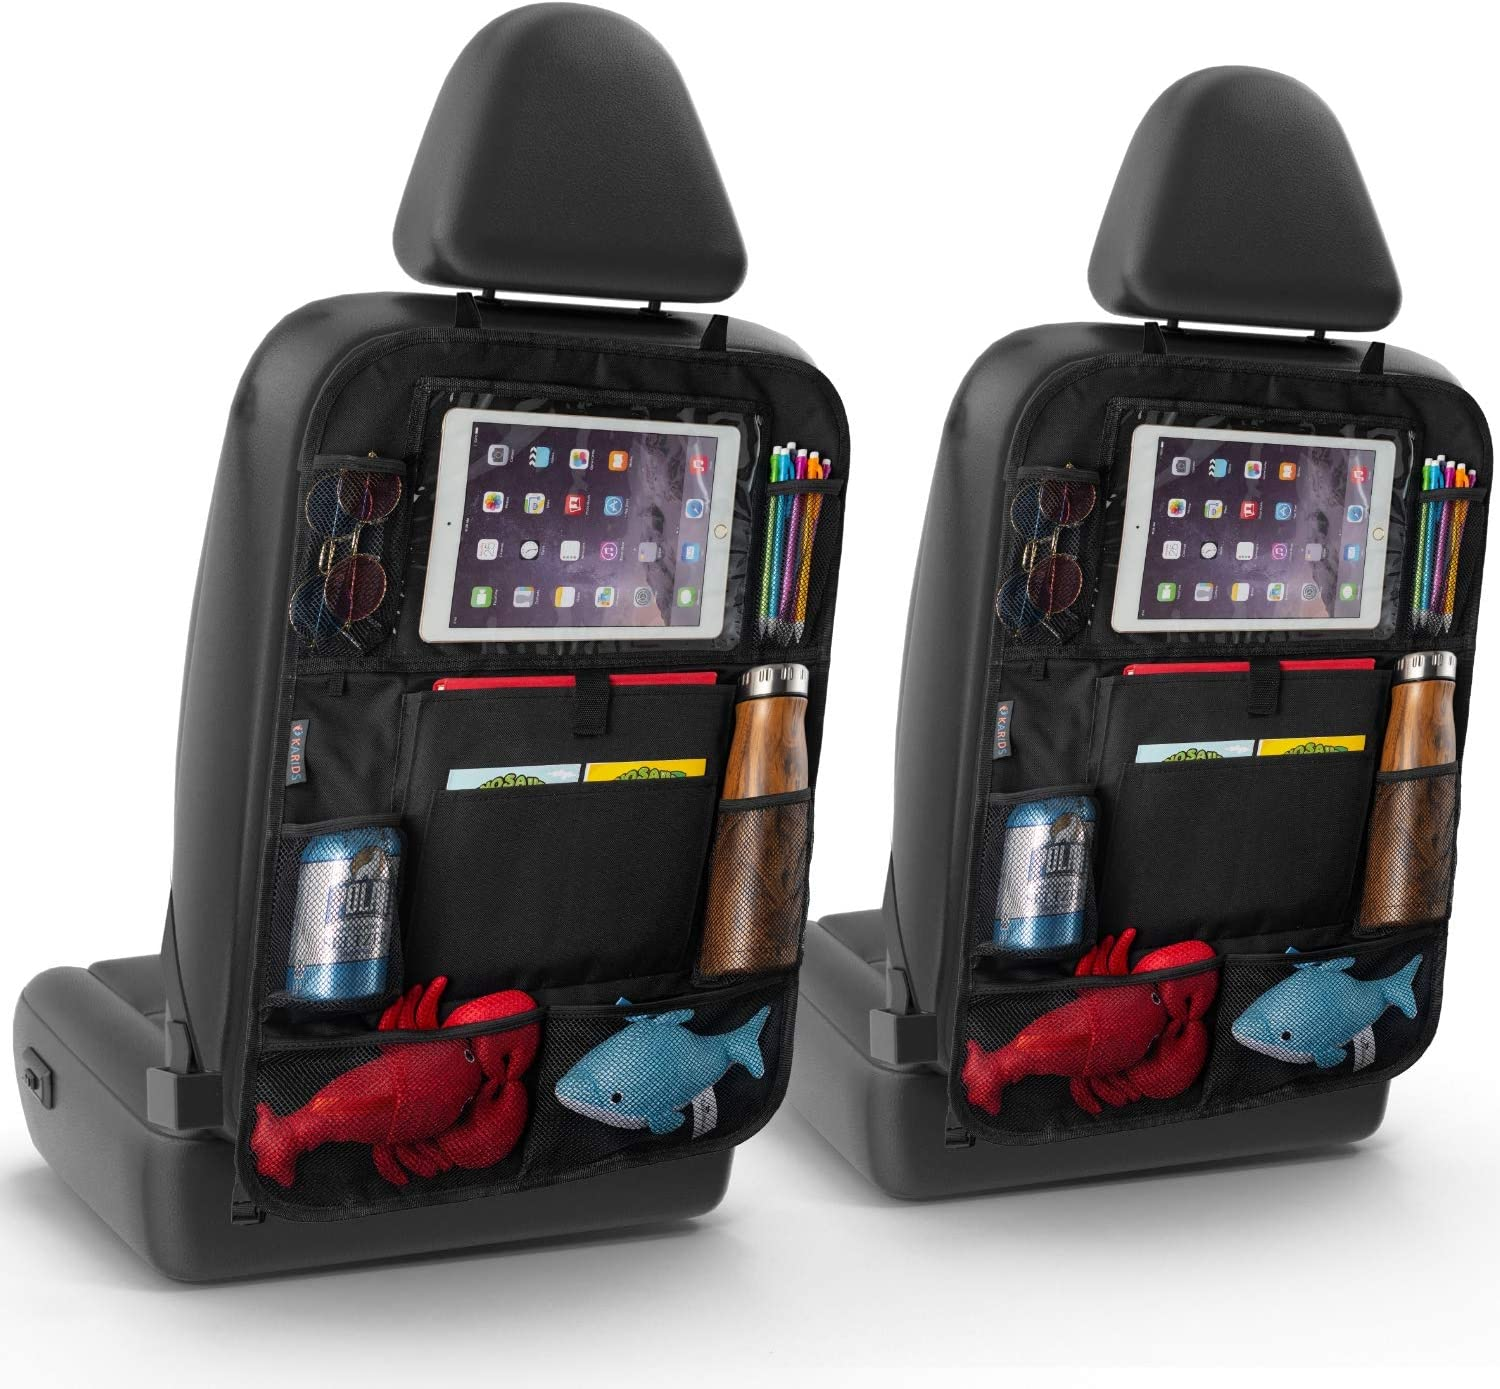 Karids 2 Pack Backseat Car Organizer - Multi Pocket All Purpose Holder for iPad, Cooler bottles, Toys, Books, Tissues, etc.-car seat accessories storage protector organiser-campervan uk